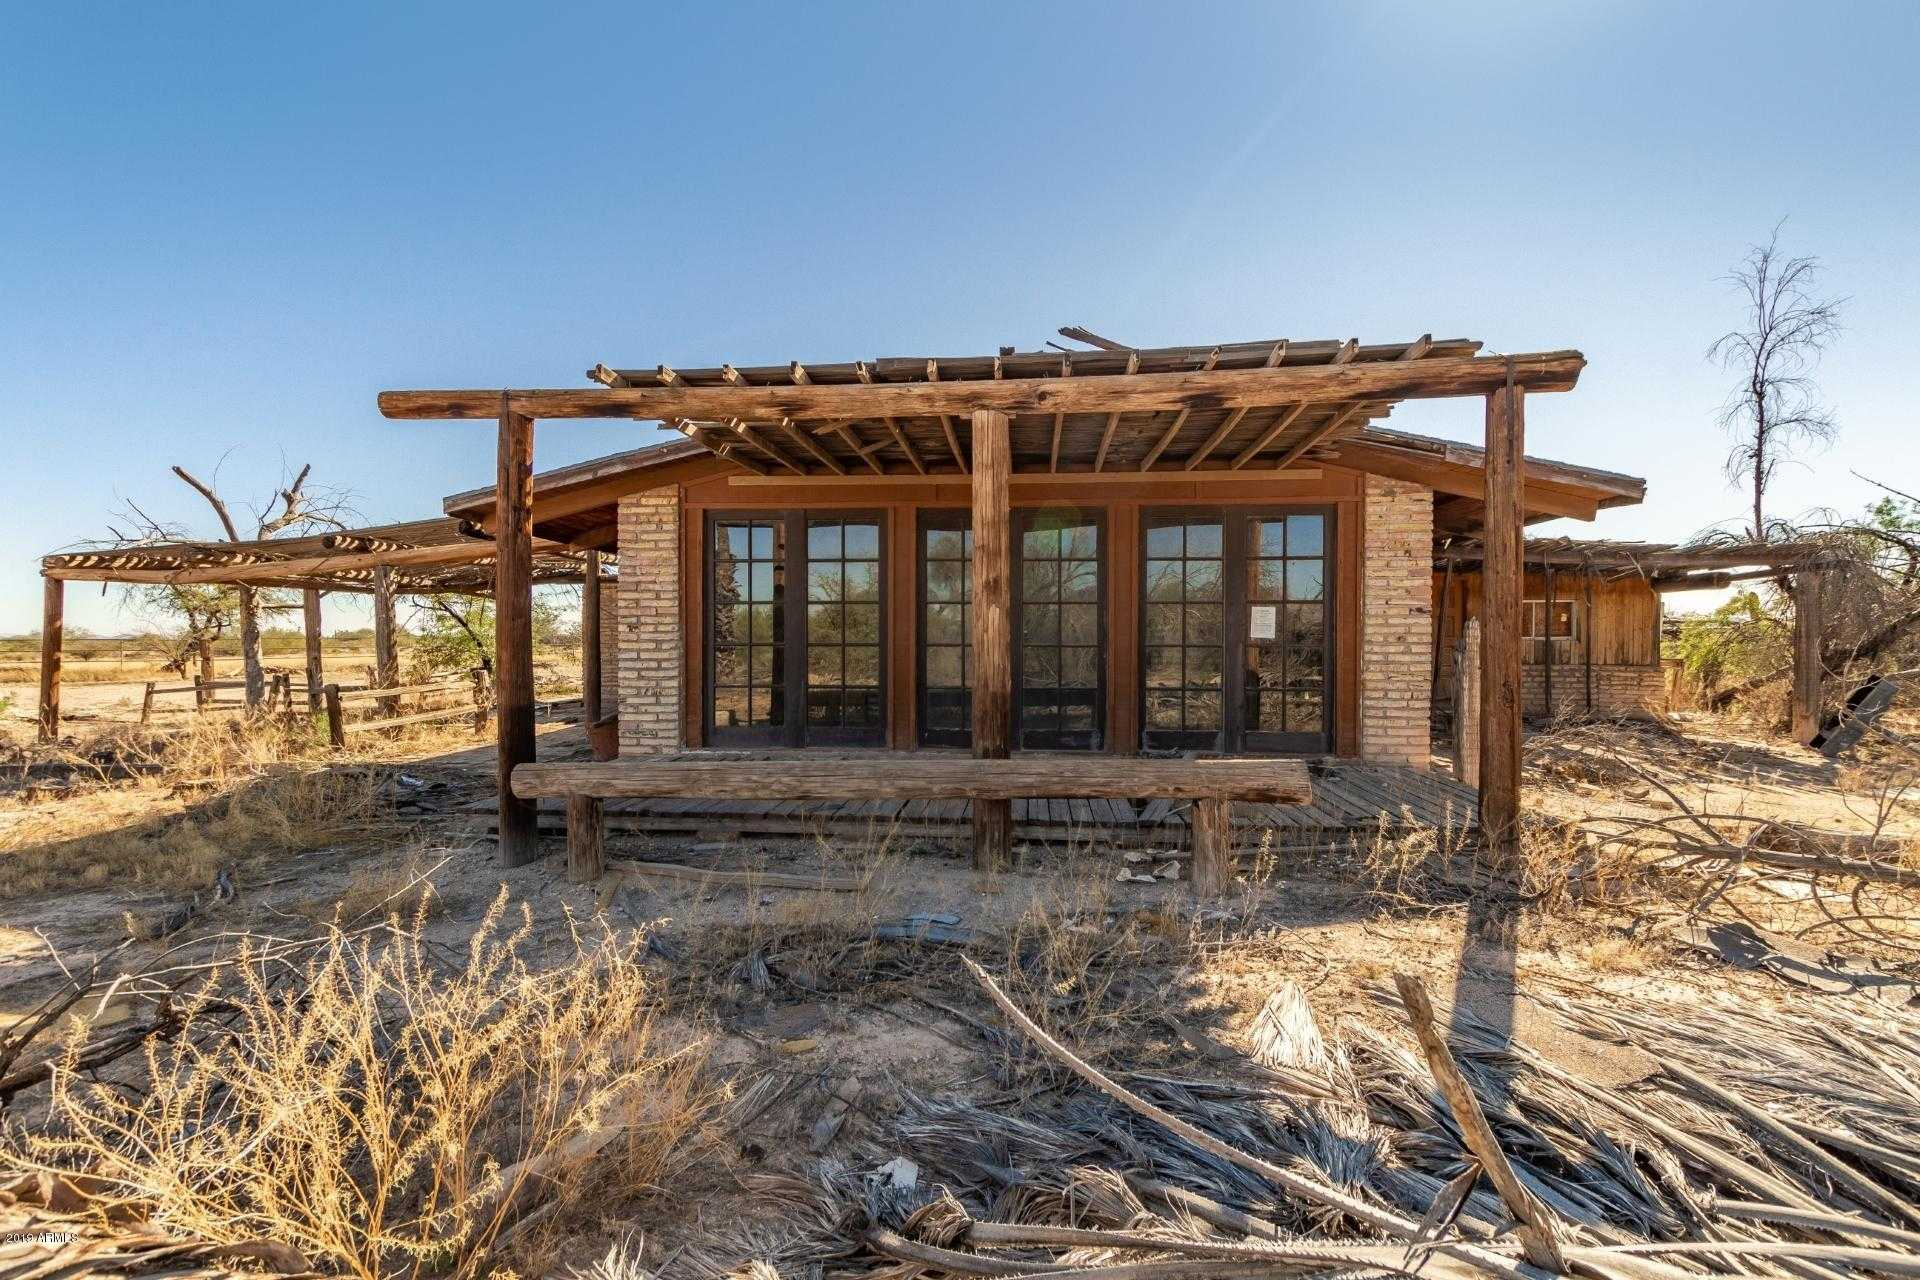 $200,000 - 2Br/2Ba - Home for Sale in Harquahala Ranches 2, Tonopah